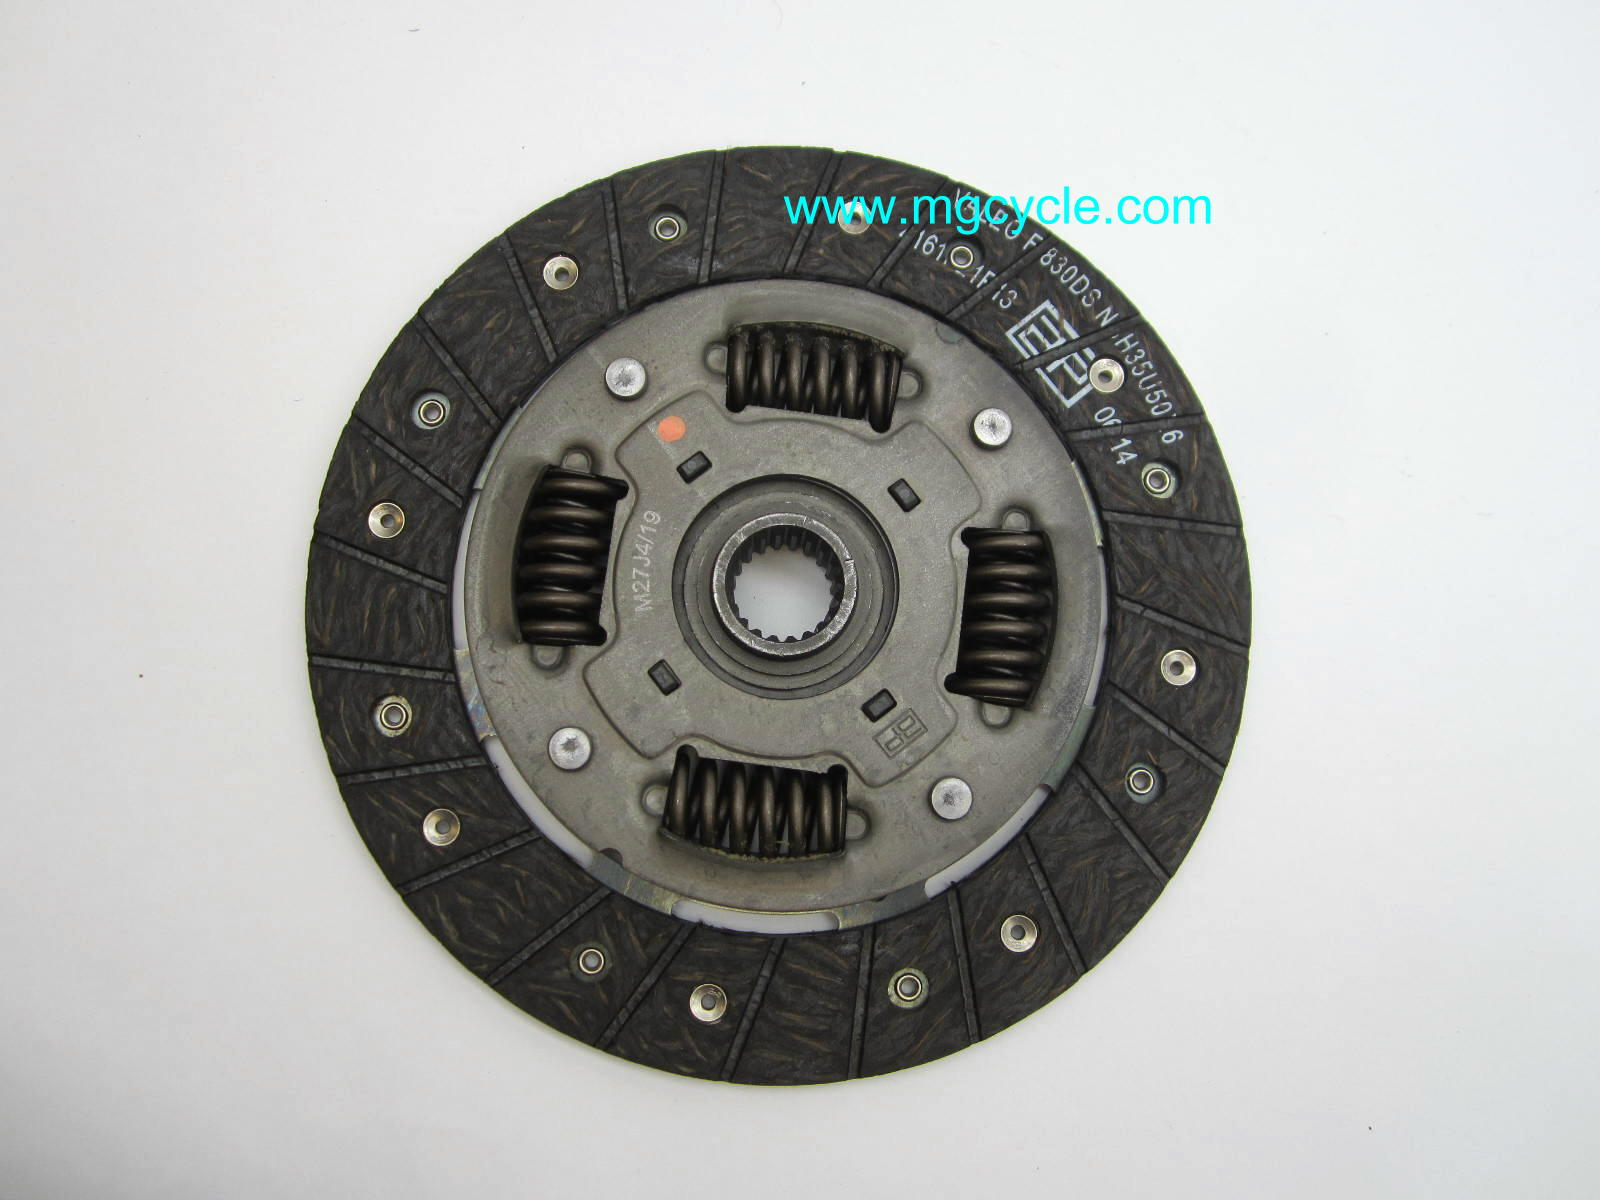 B064100 Clutch plate, California 1400, early Griso, Stelvio